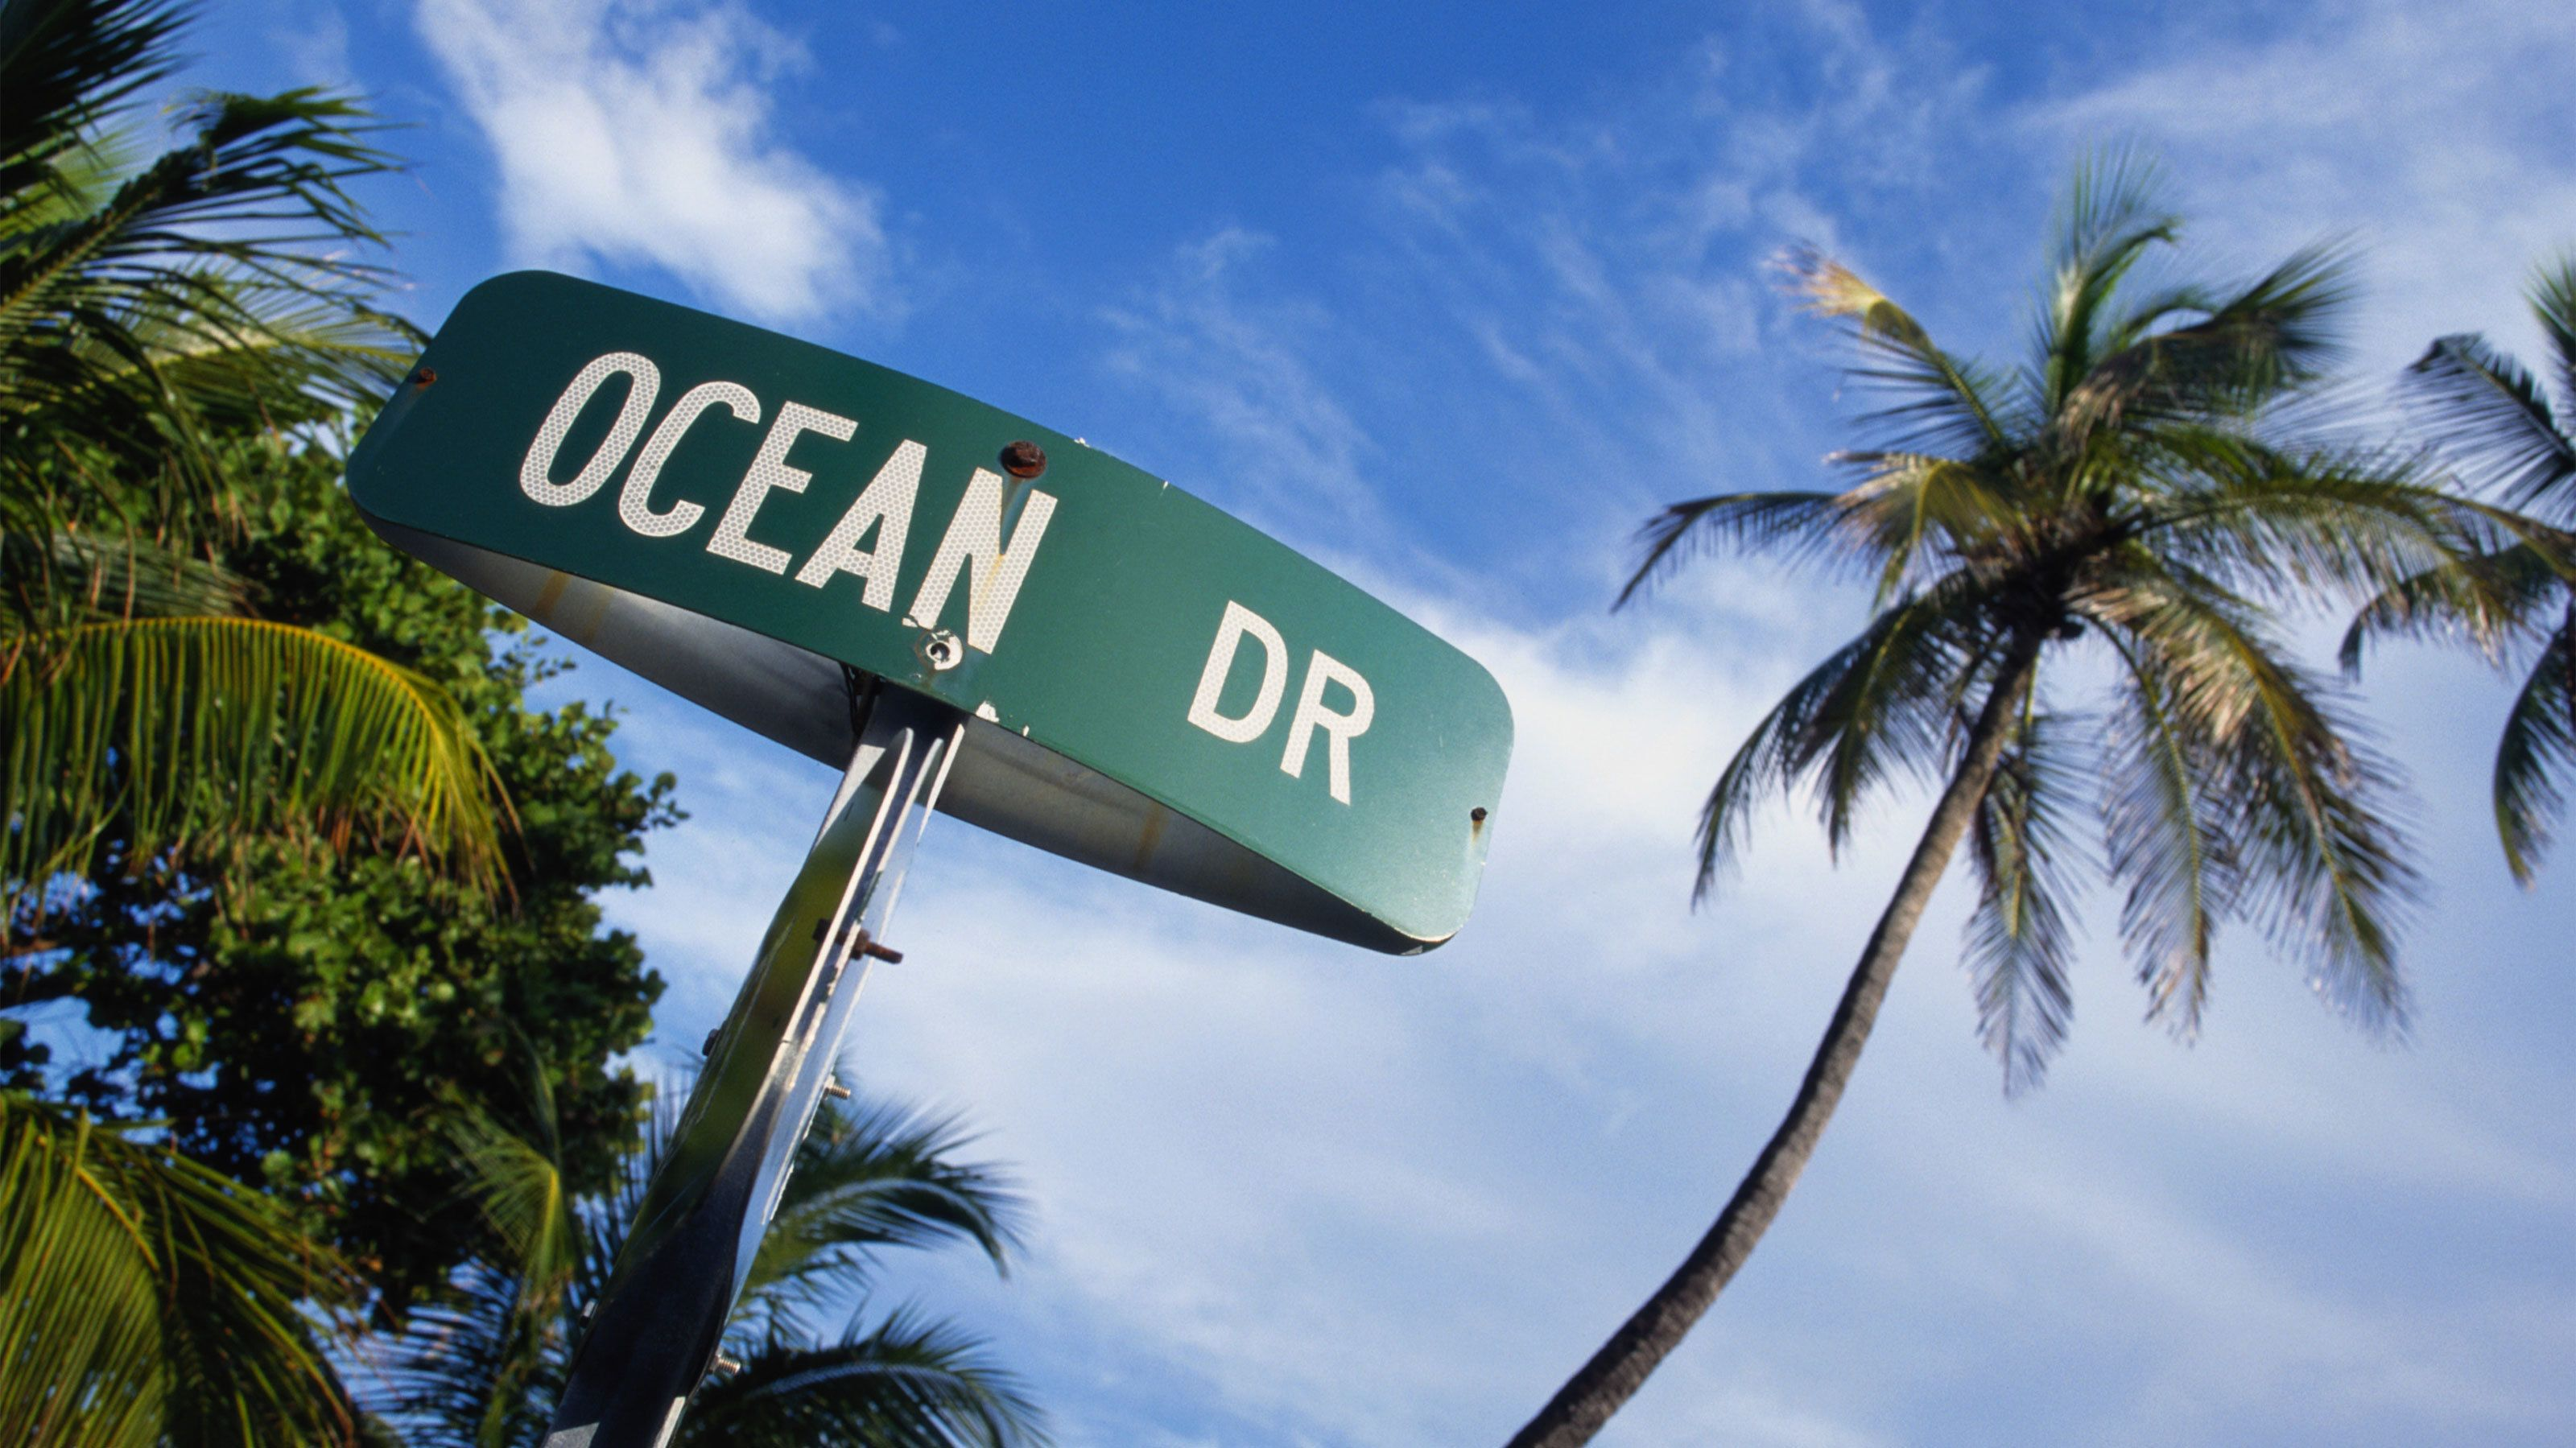 Ocean Drive street sign and palm trees in Orlando.